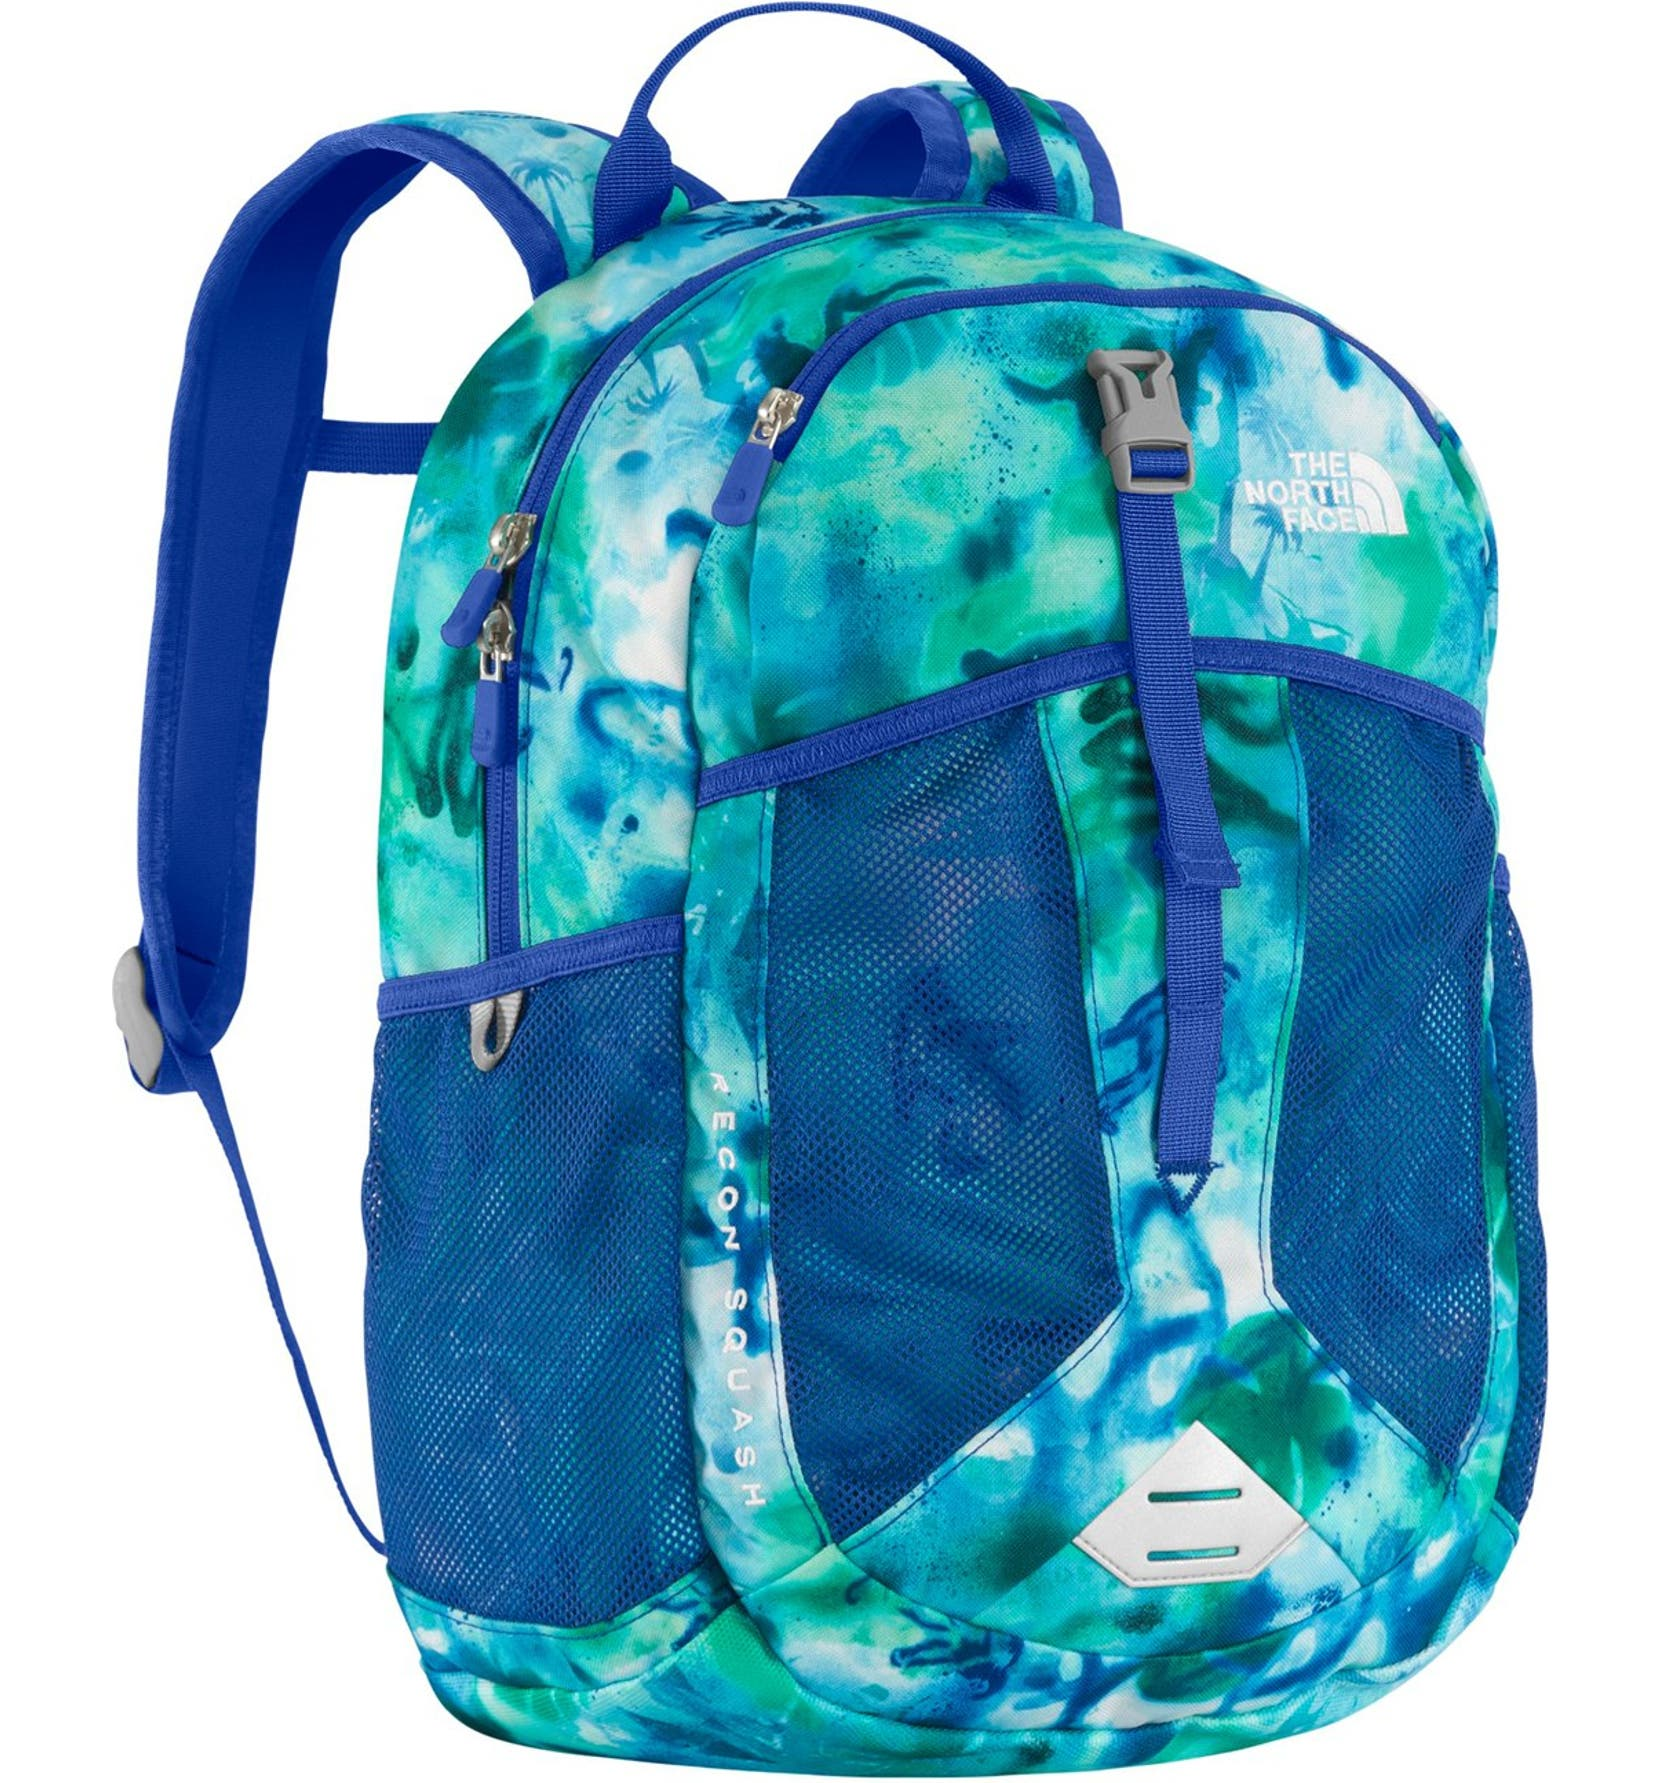 423aeb27d North Face Youth Recon Squash Backpack Canada - CEAGESP